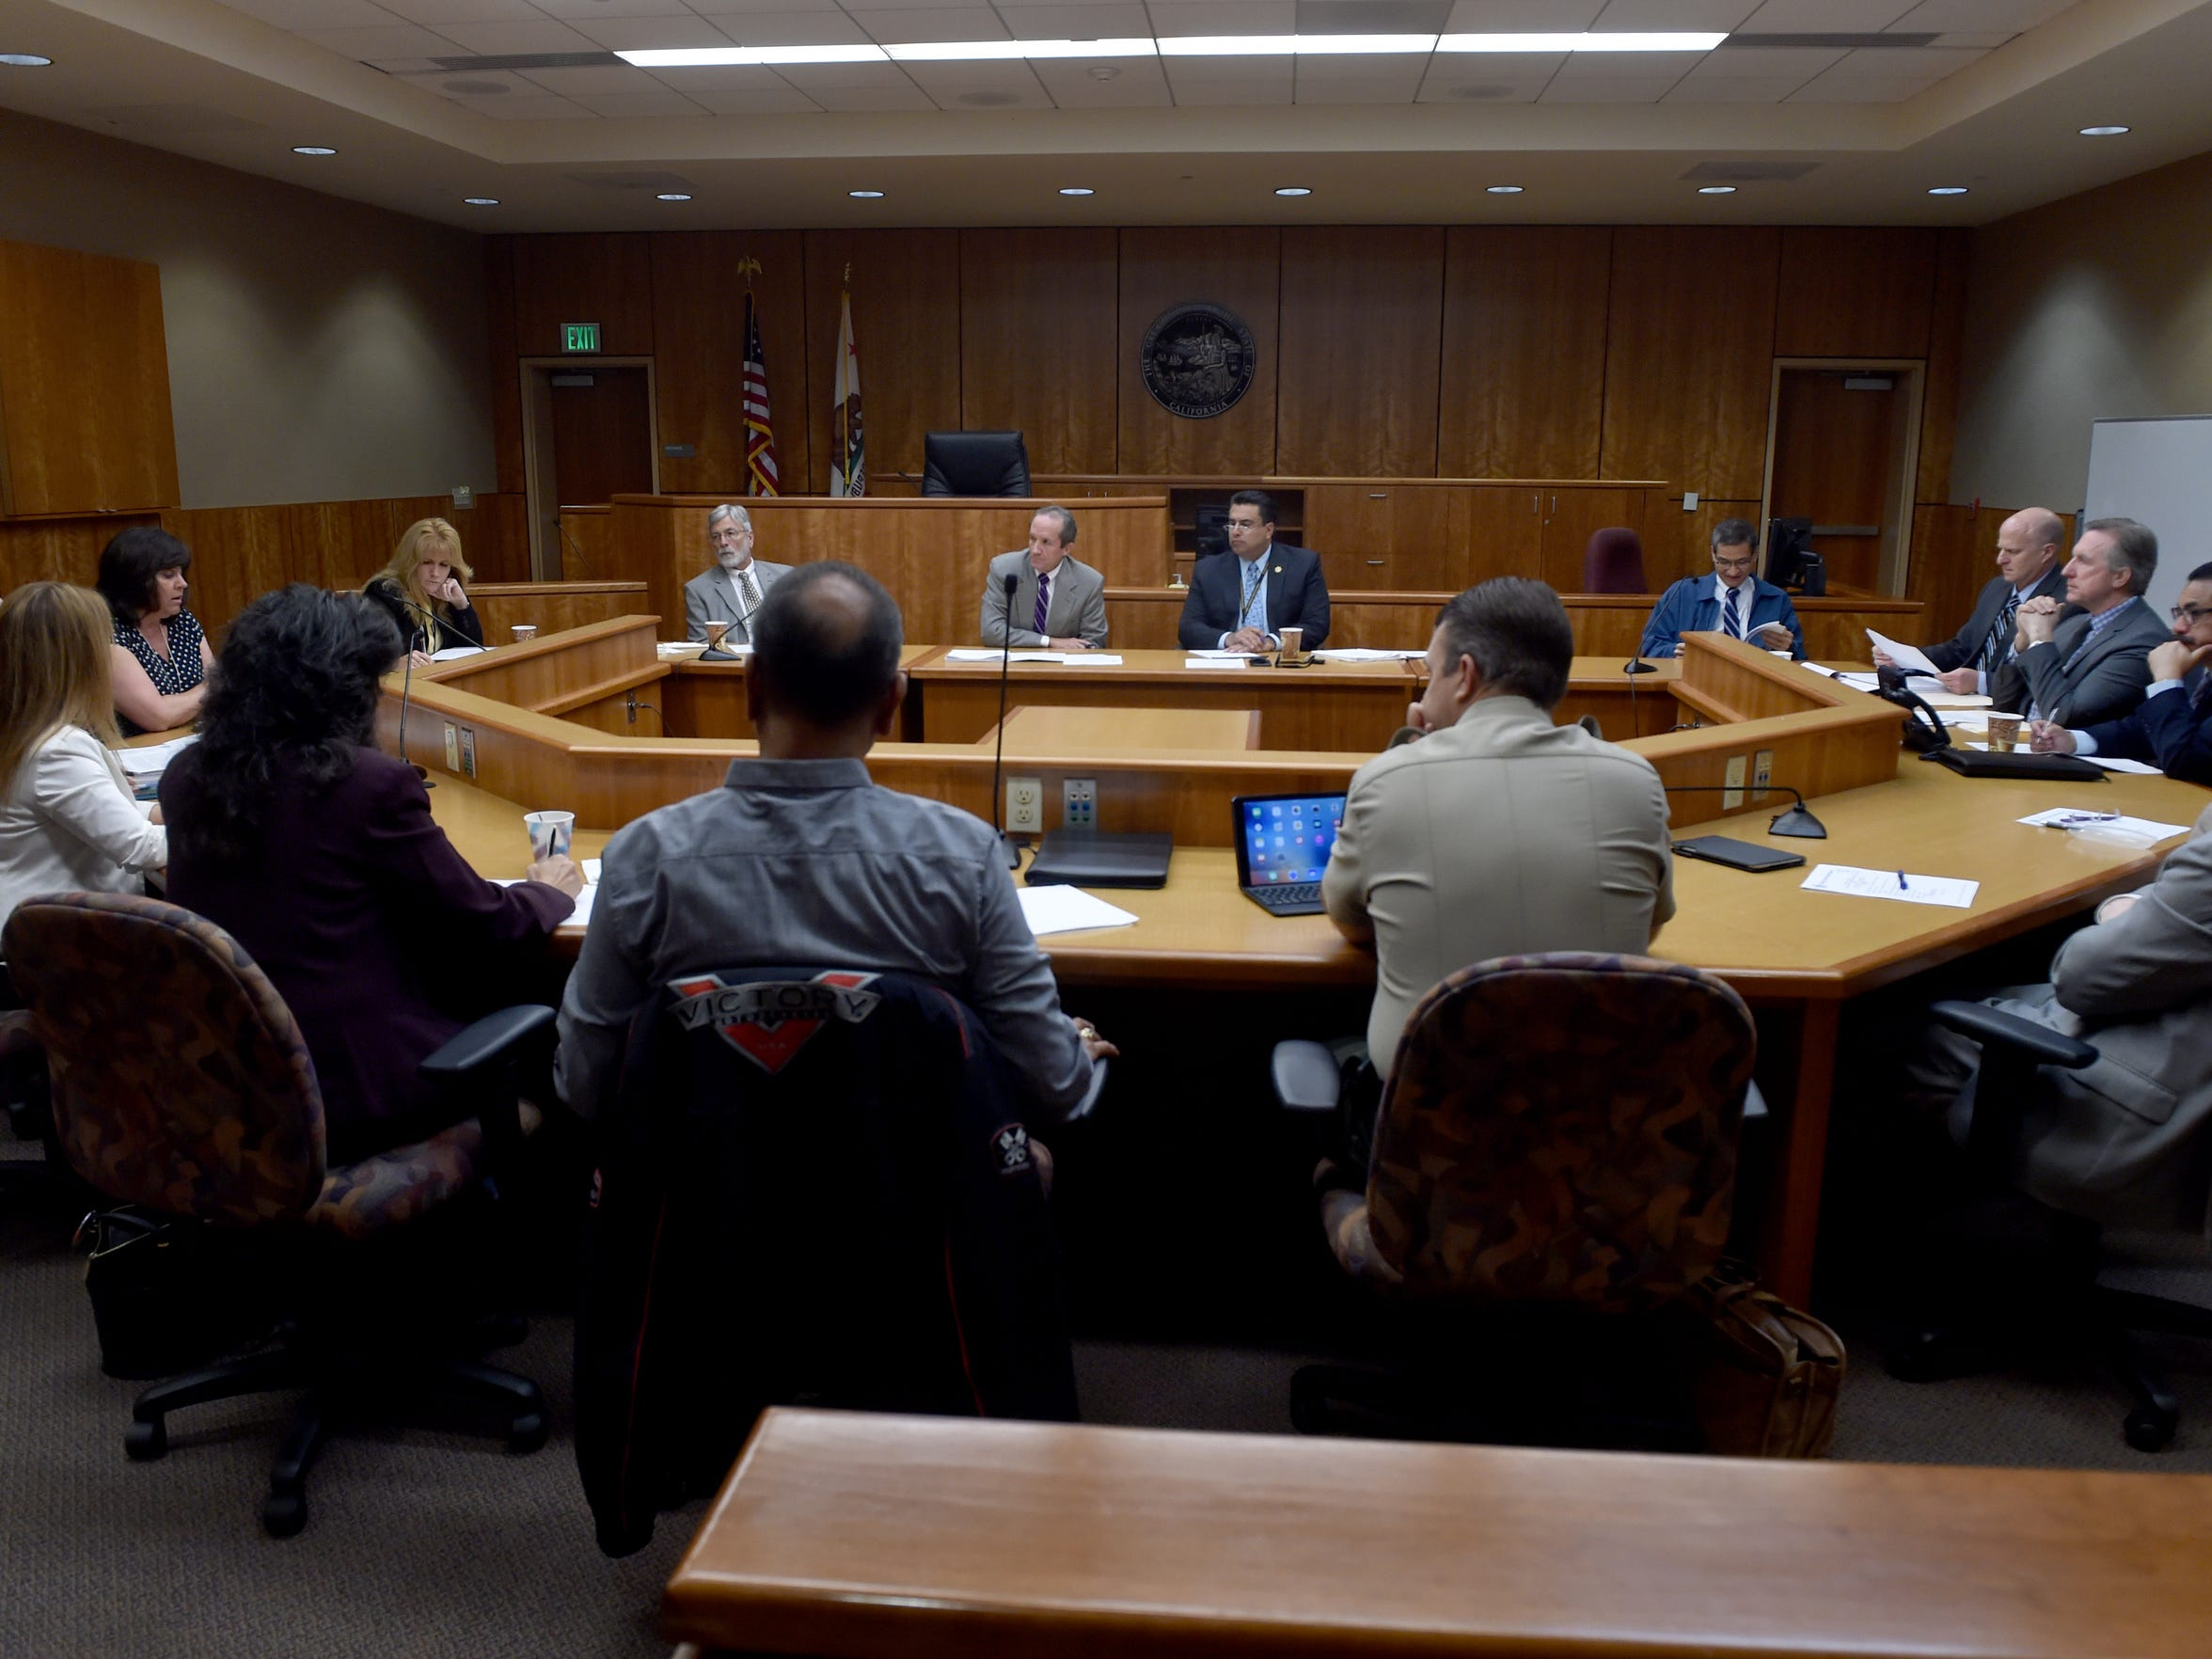 Members of the of the Juvenile Justice Coordinating Council meet at Ventura County Juvenile Court.